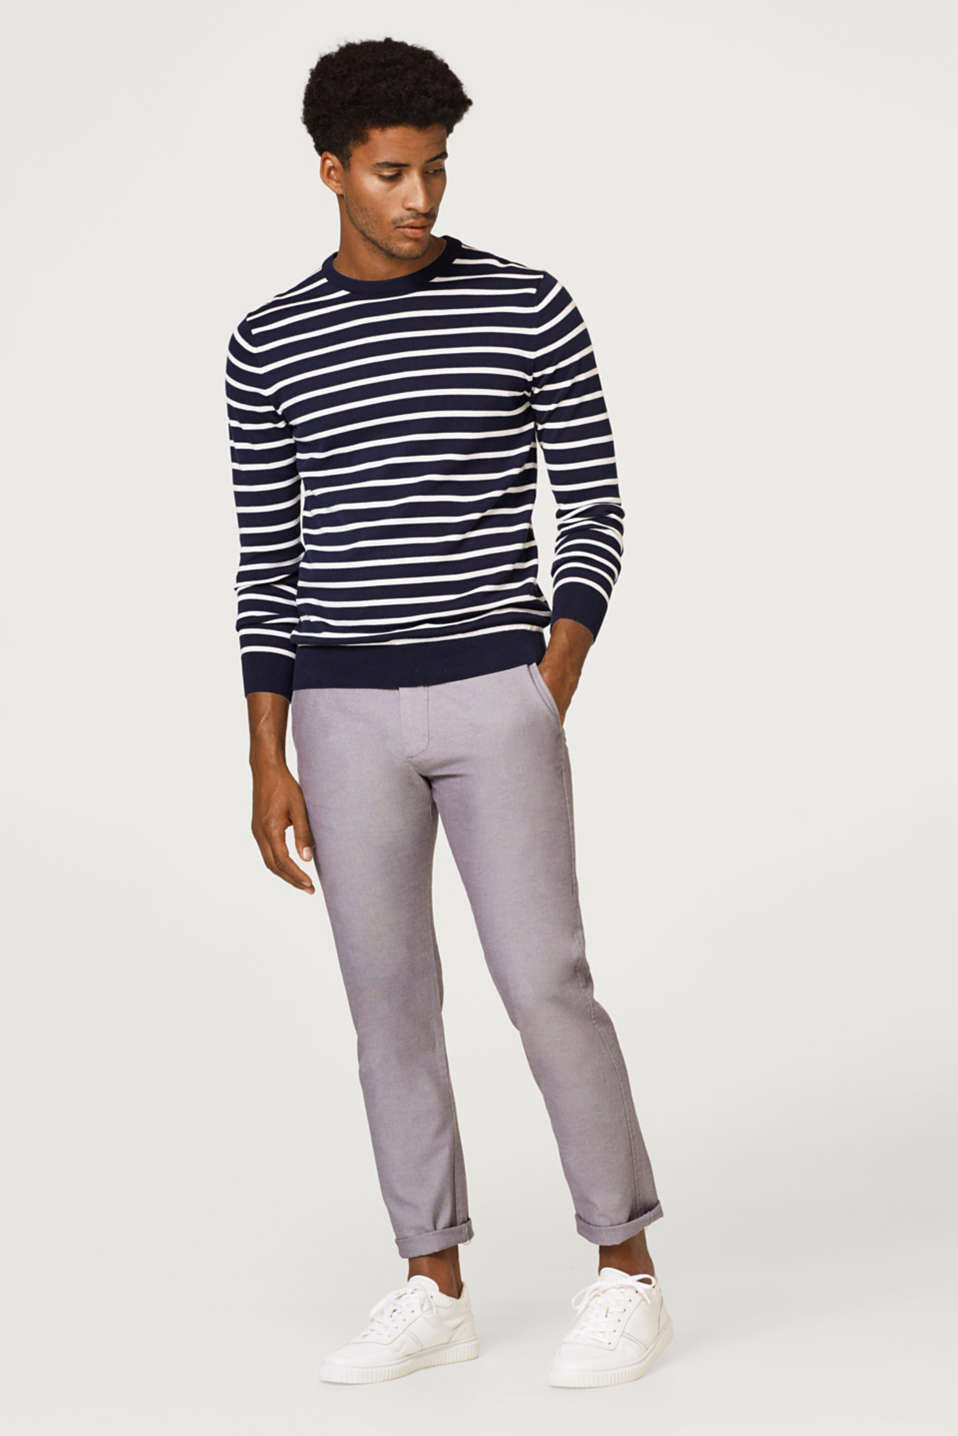 Fine melange twill trousers with stretch for comfort